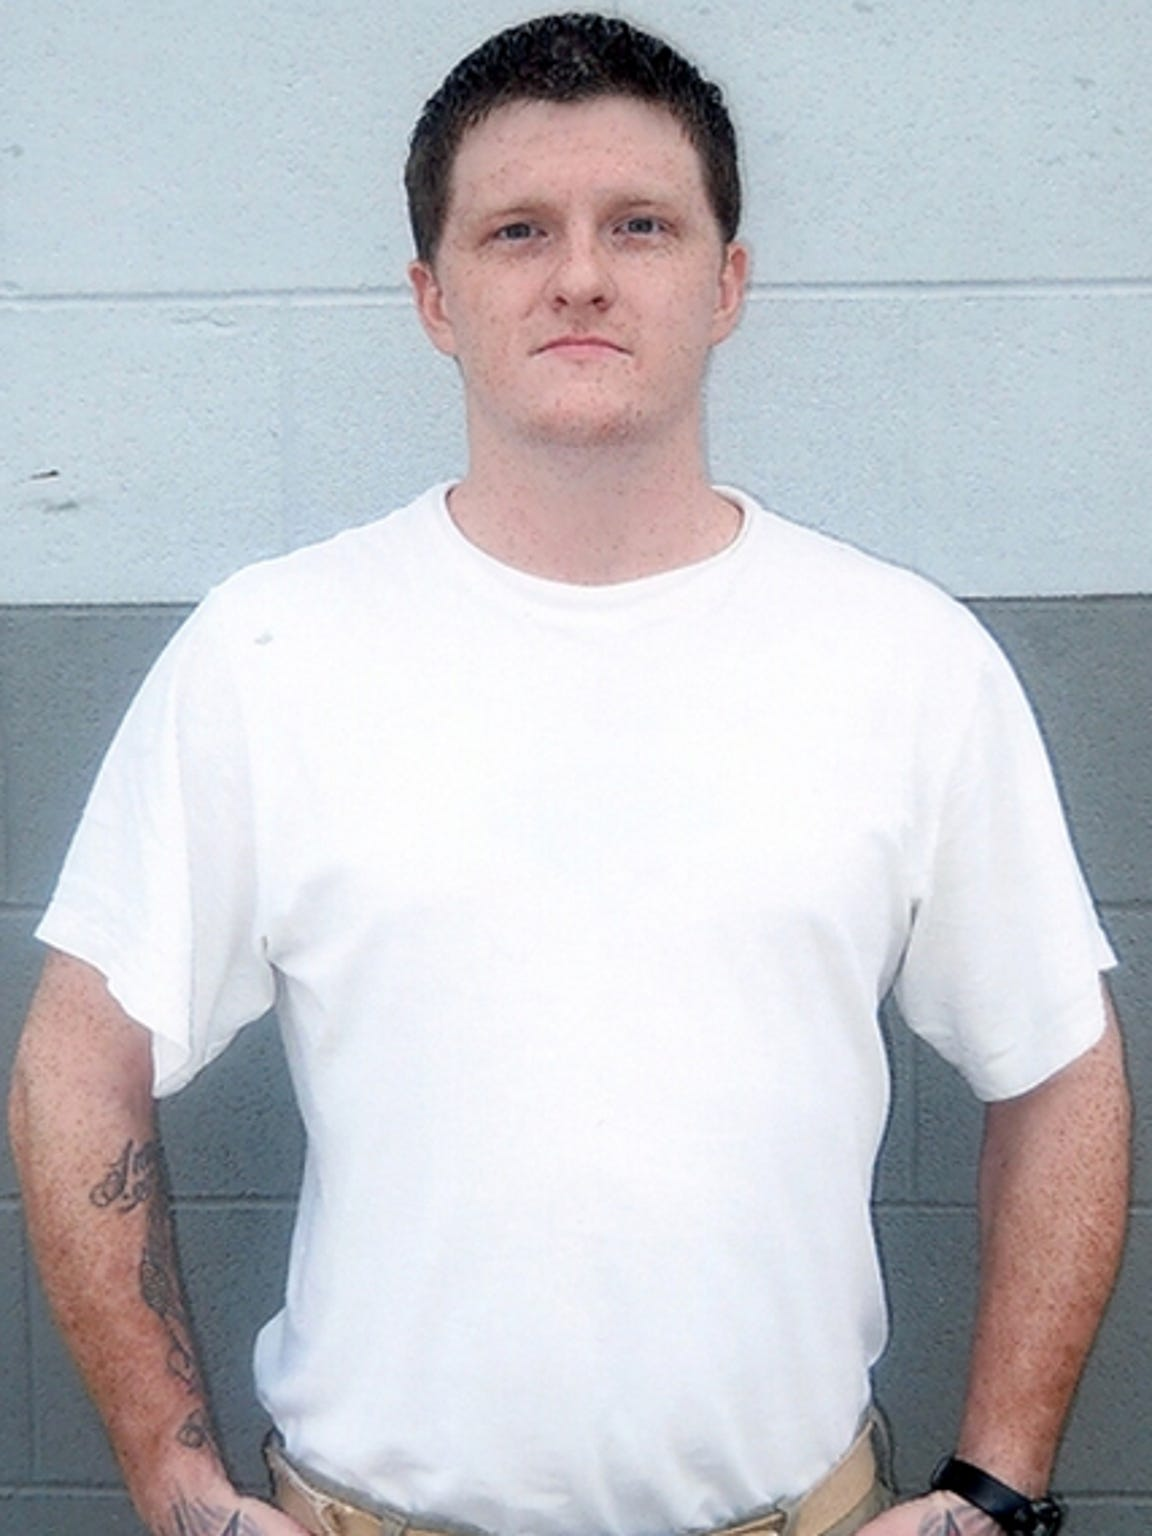 Christopher Zoukis, a federal inmate in Virginia and